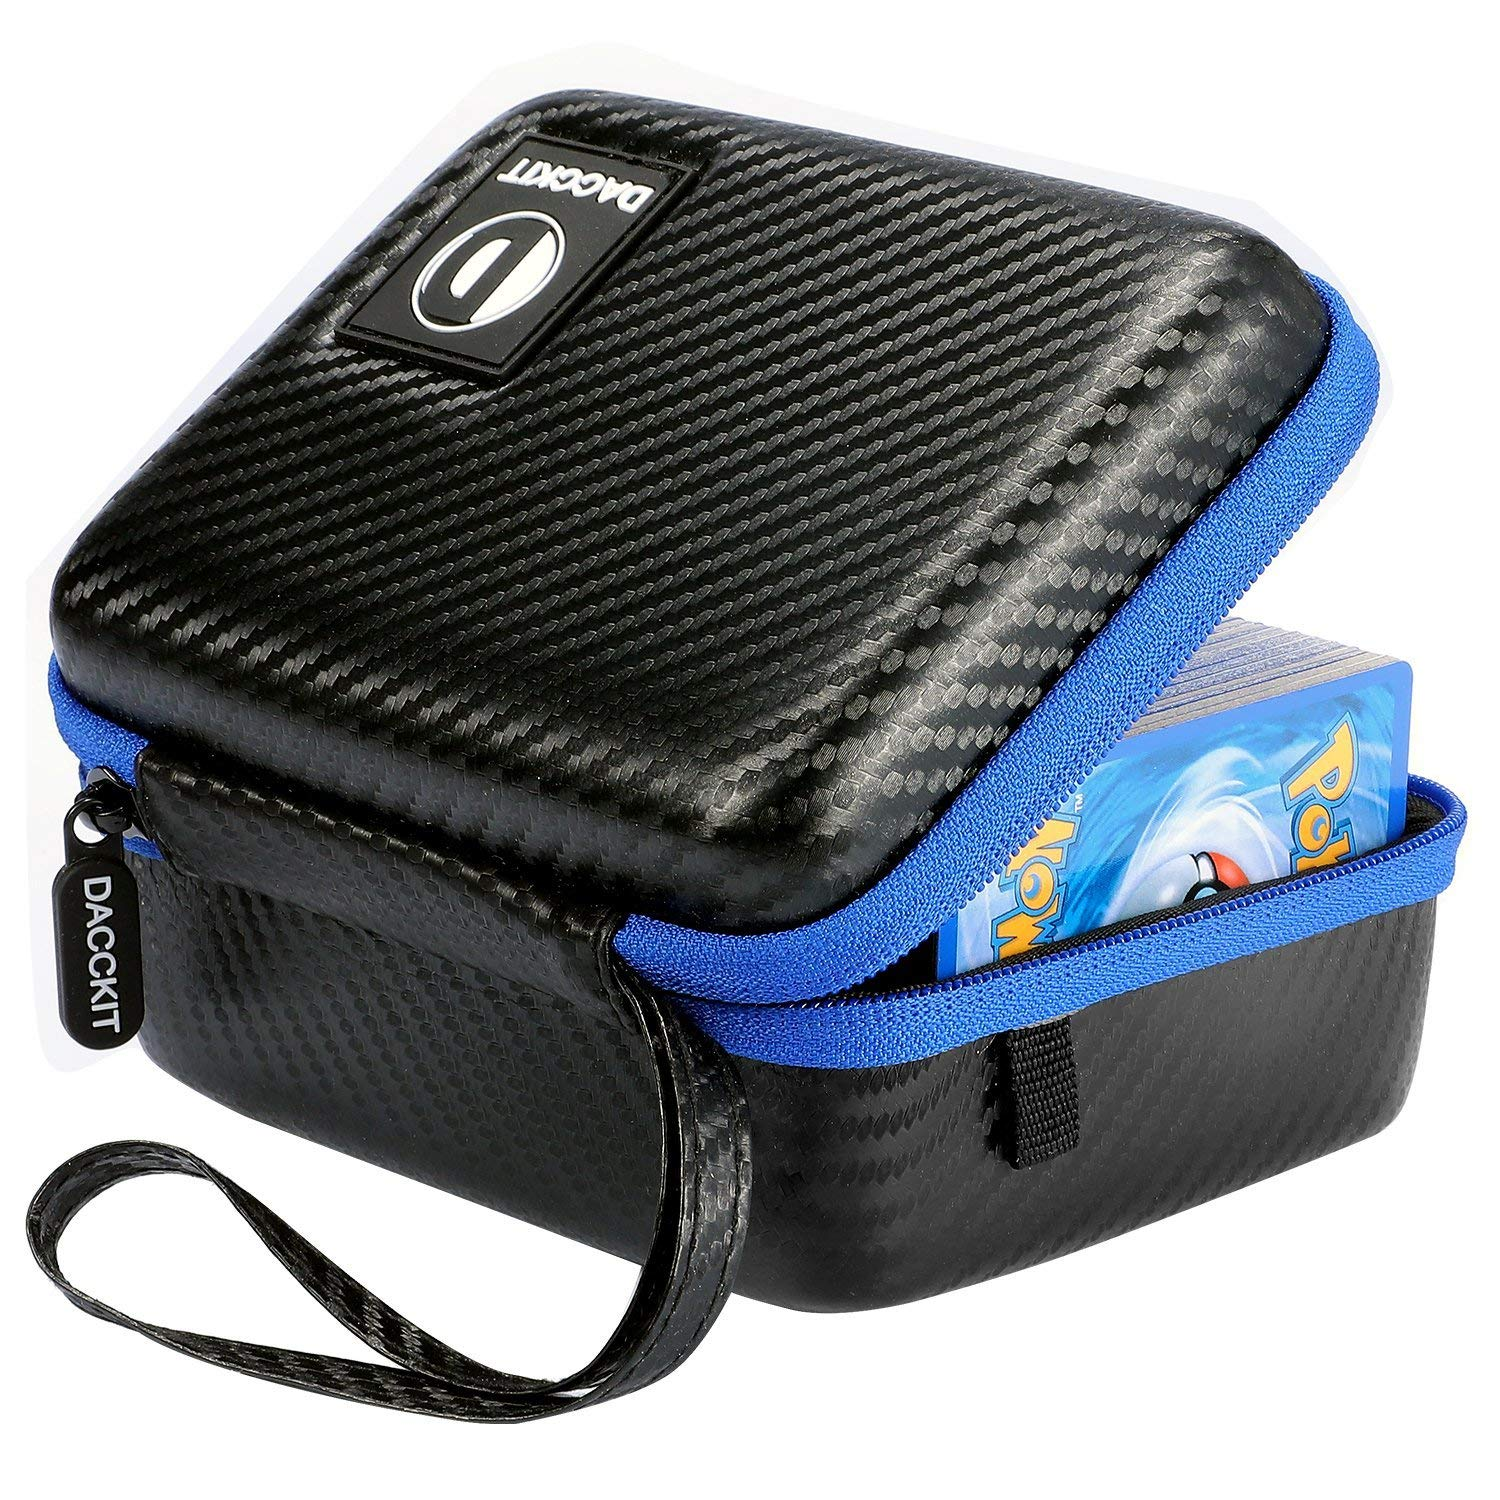 DACCKIT Carrying Case Compatible with Pokemon Trading Cards - Fitsup to 400 Cards, Card Holder with Hand Strap & Carabiner, Black